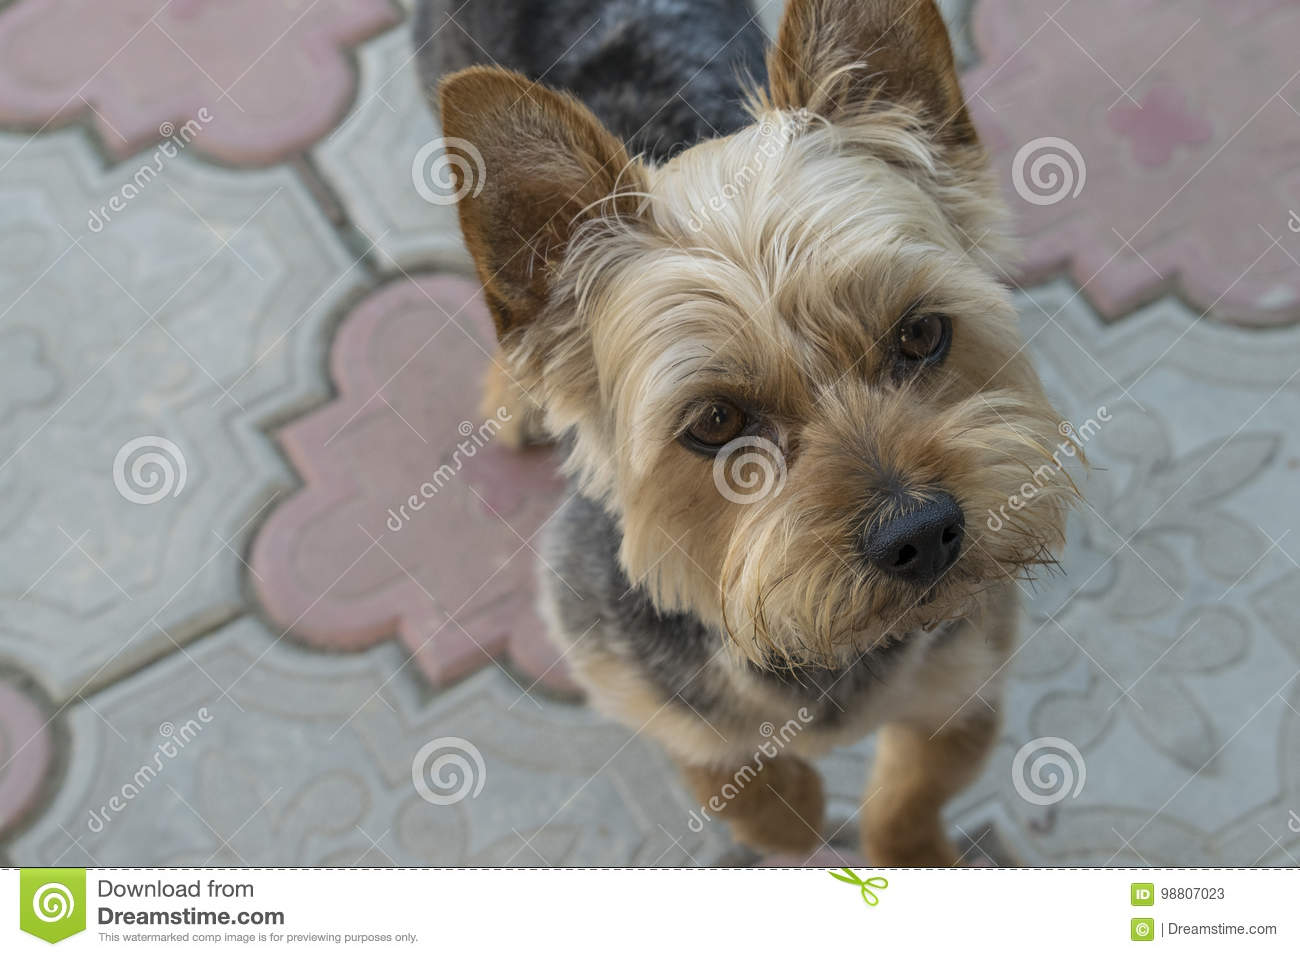 Yorkshire Terrier Looking At The Camera Stock Image Image Of Domestic Cute 98807023